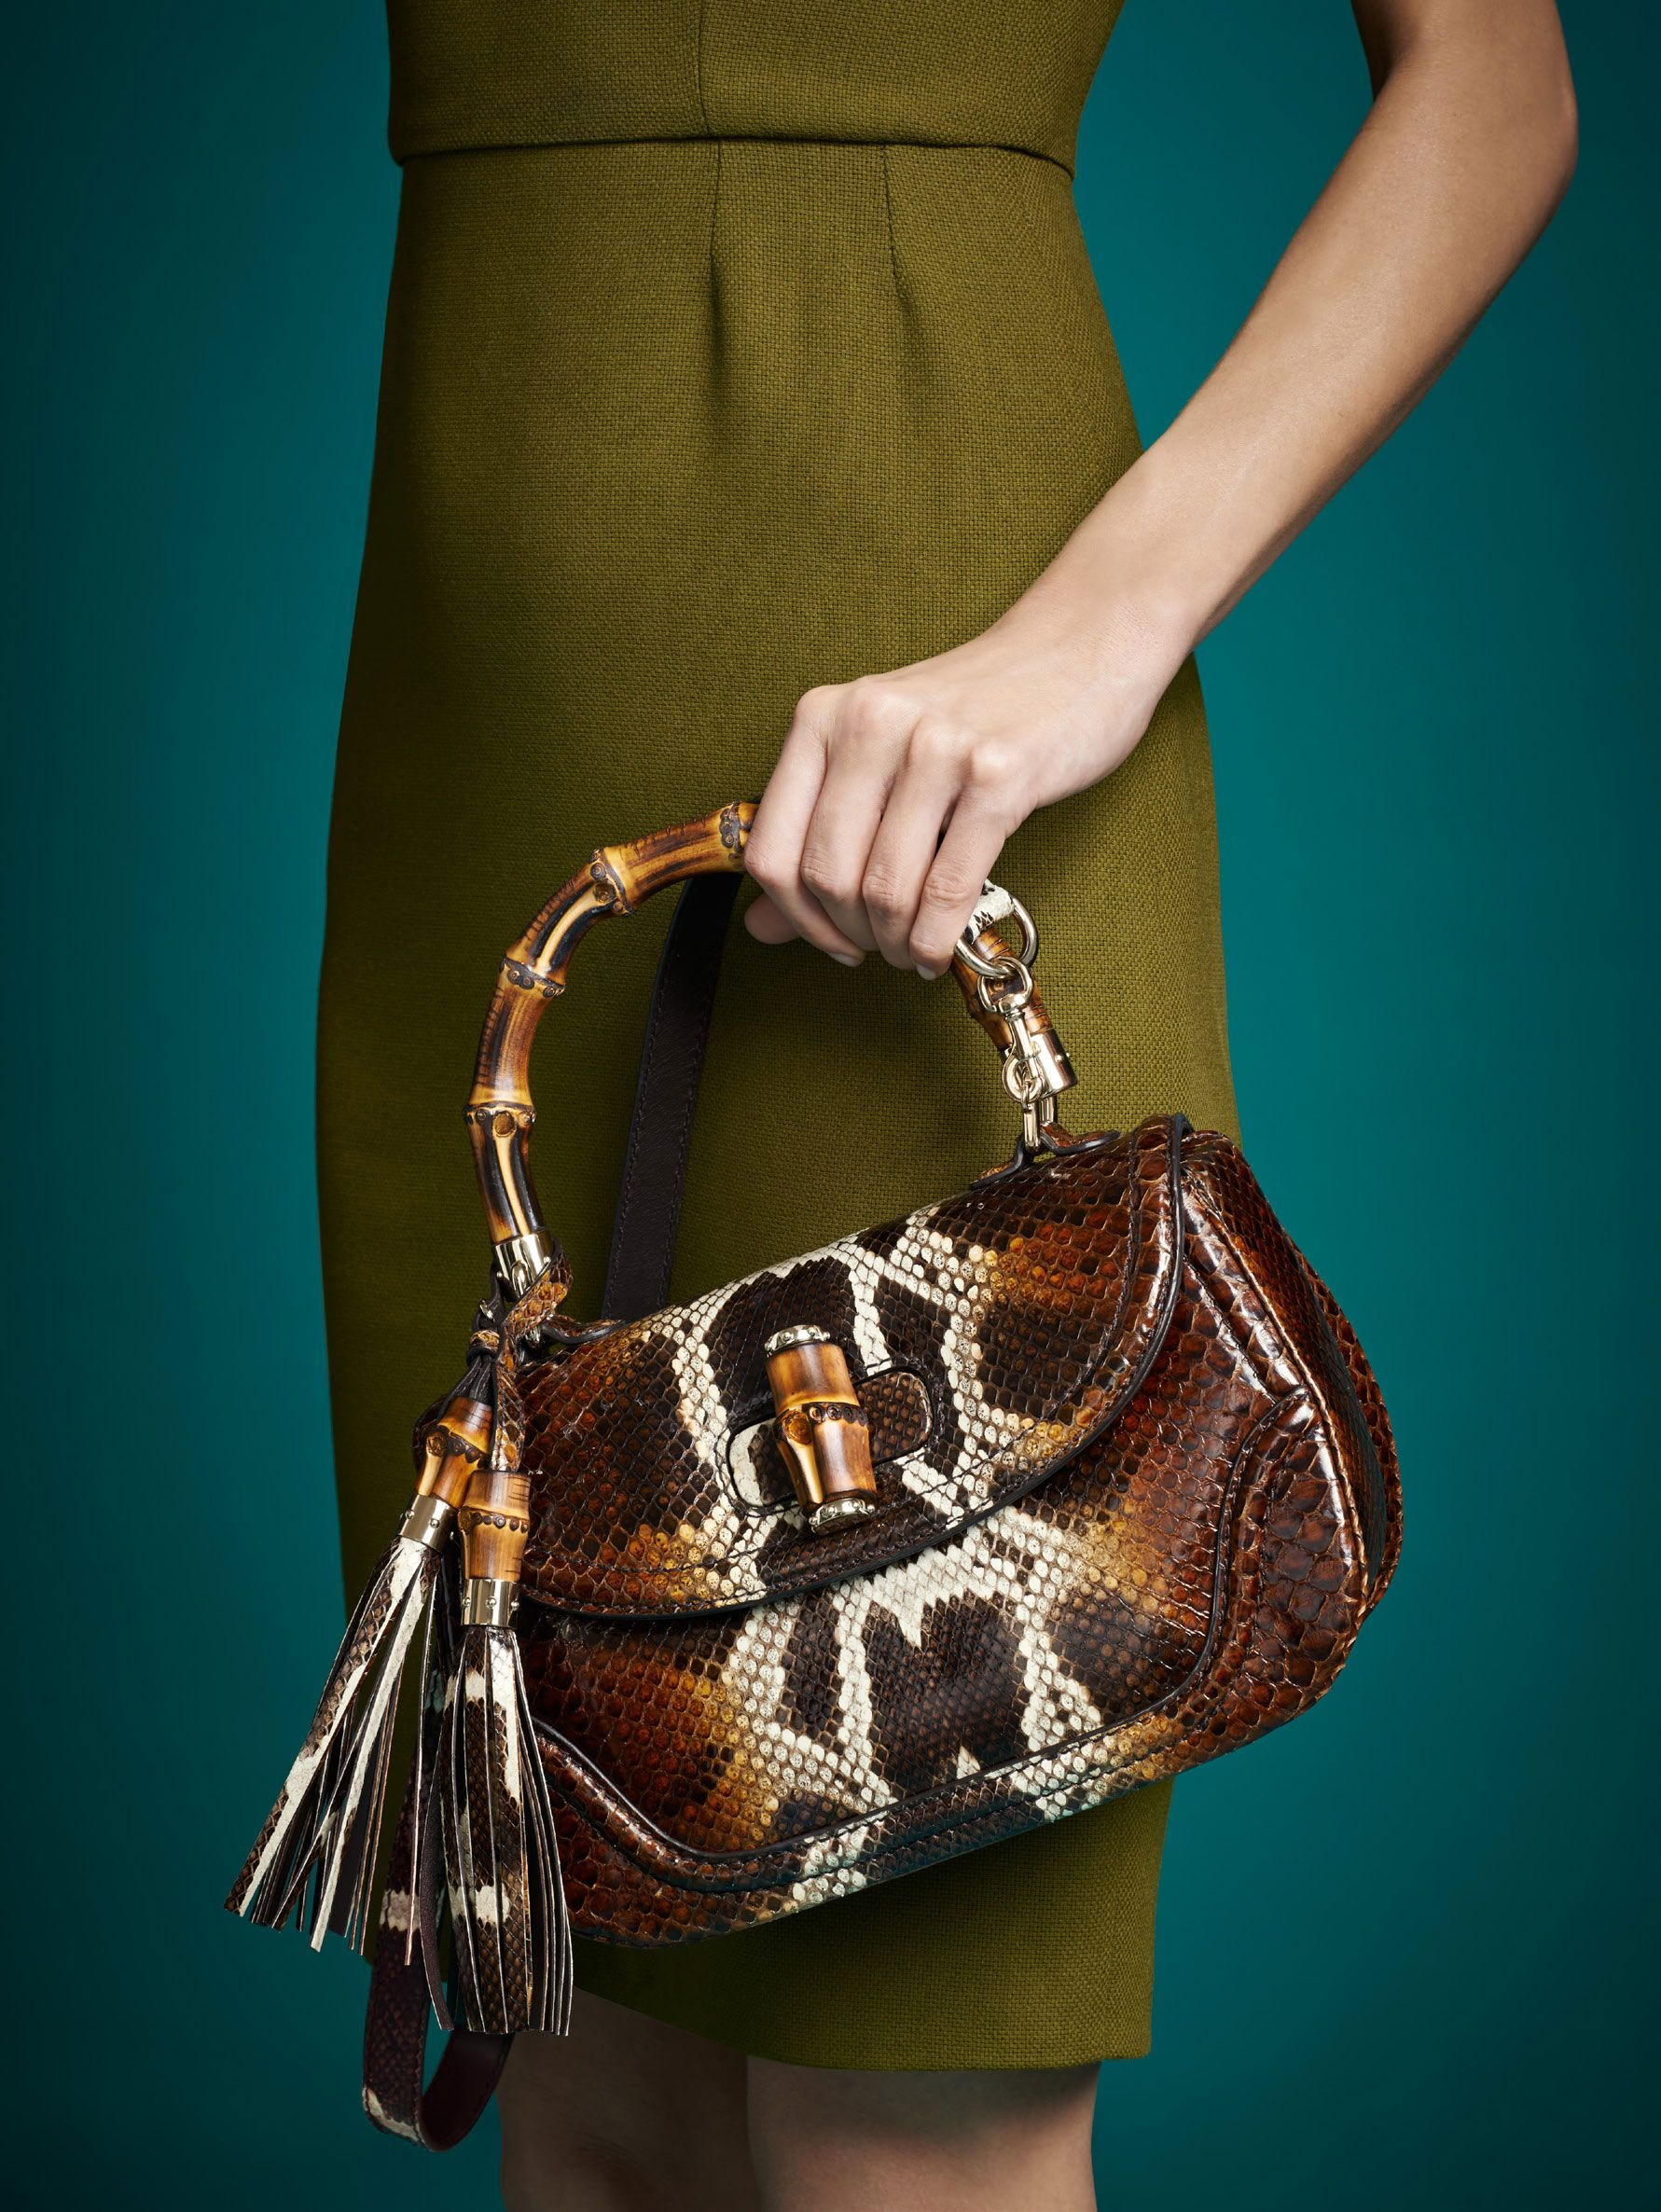 e7ce53d7547 The FW 13-14 Gucci New Bamboo Bag